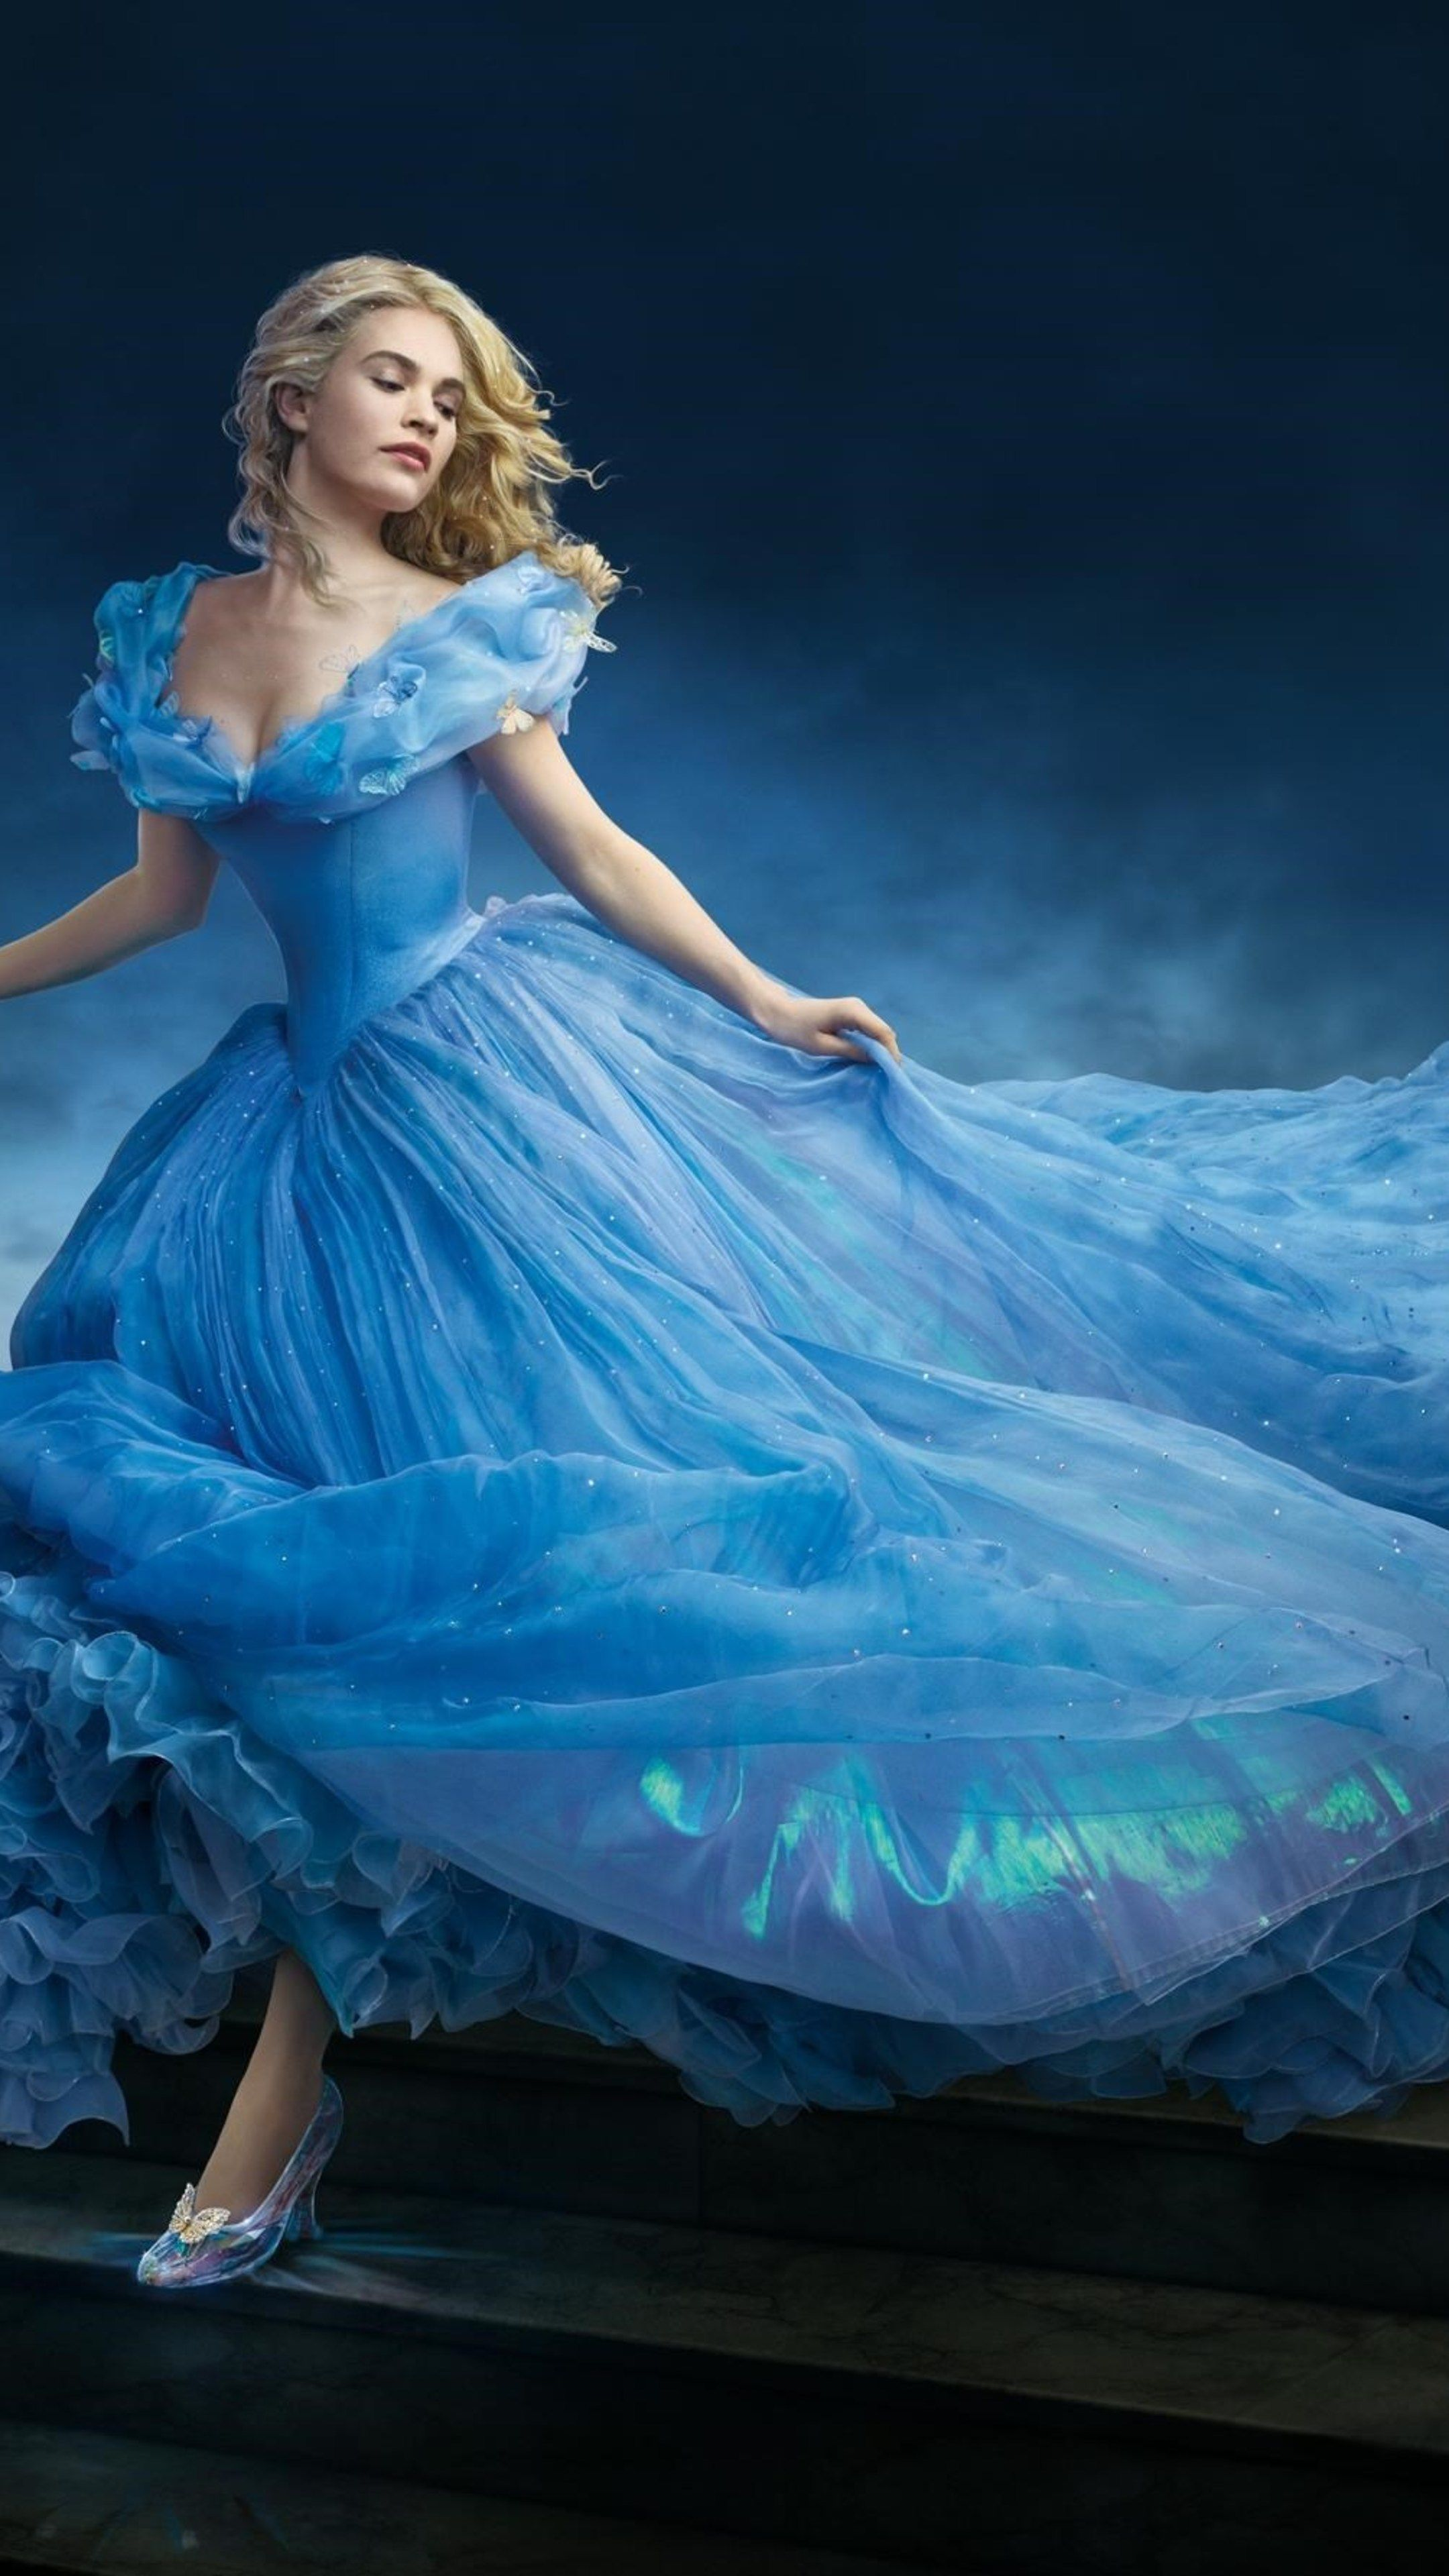 Lily James In Cinderella In 2160x3840 Resolution Disney Princess Dresses Disney Dresses Cinderella Dresses